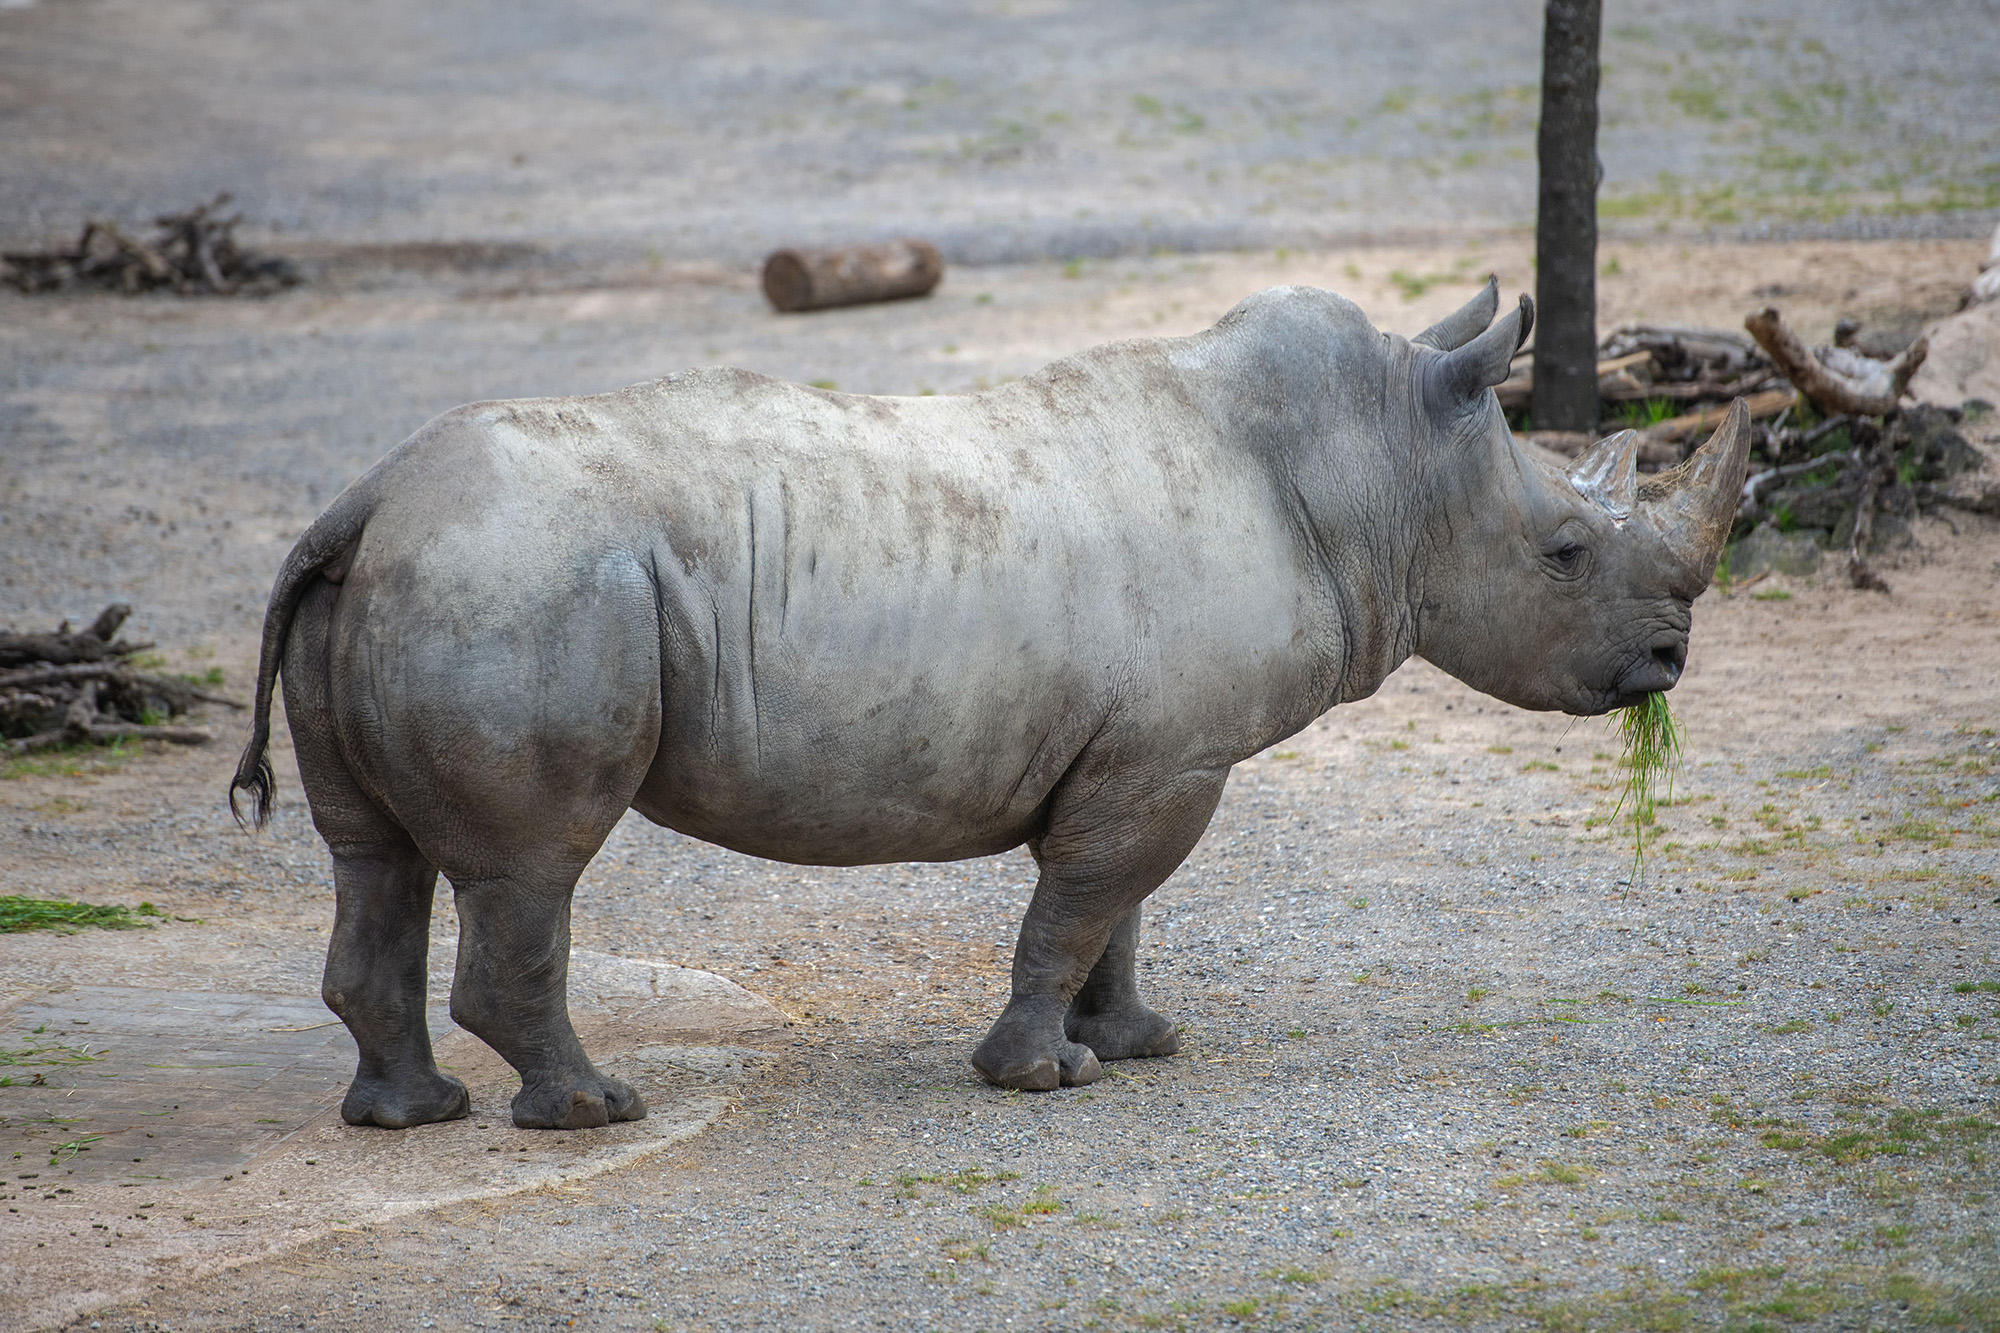 Twelve-year-old white rhino Kimba was brought to the Zurich Zoo in Switzerland to breed and help ensure continuation of the species. (Zoo Zurich, Pascal Marty/Zenger)